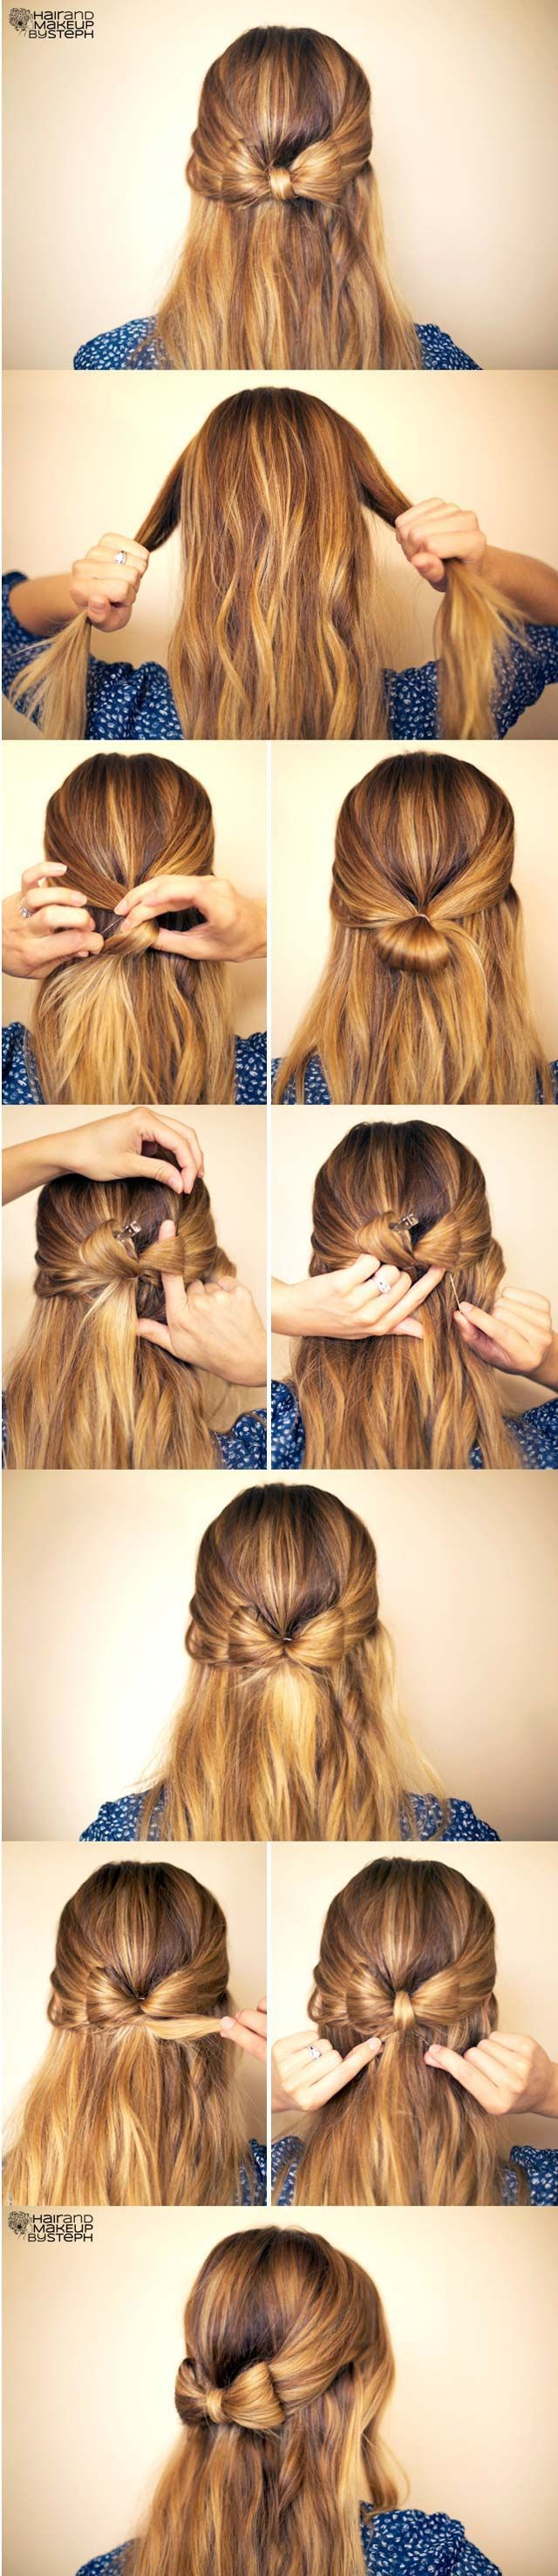 ELLE - Fashion, Styling-Tipps, Models, Designer & Trends -  DIY! Your Step-by-Step for the Hair Bow